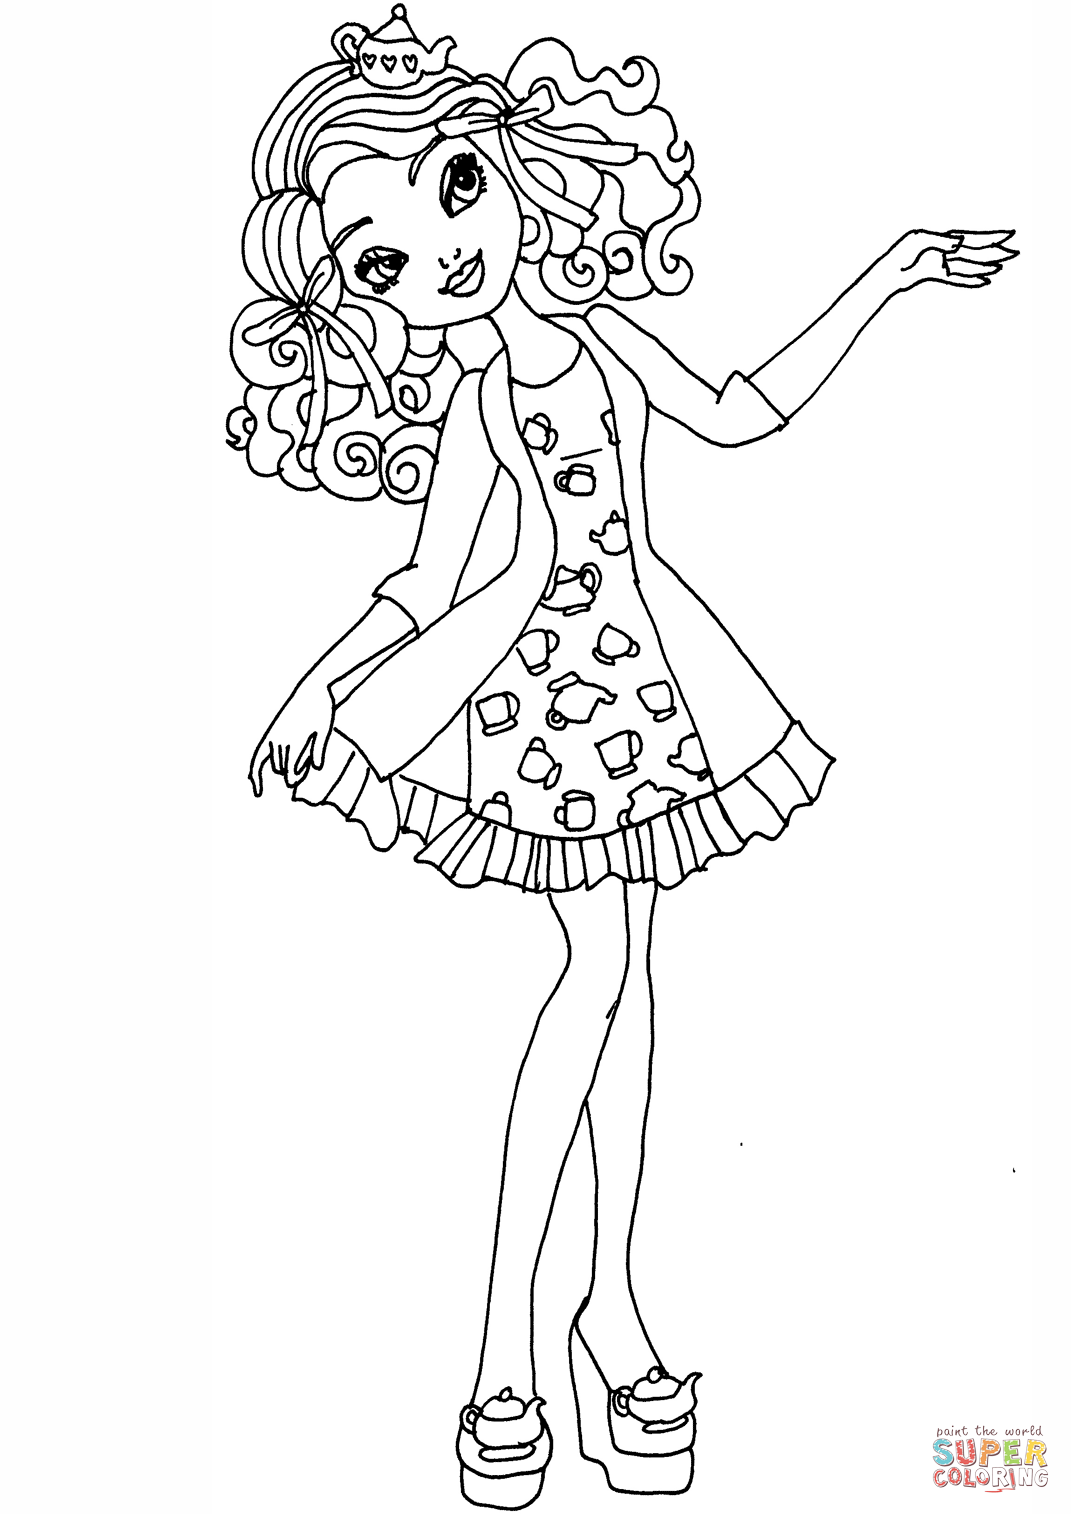 1071x1514 Ever After High Getting Fairest Madeline Coloring Page Free Lively